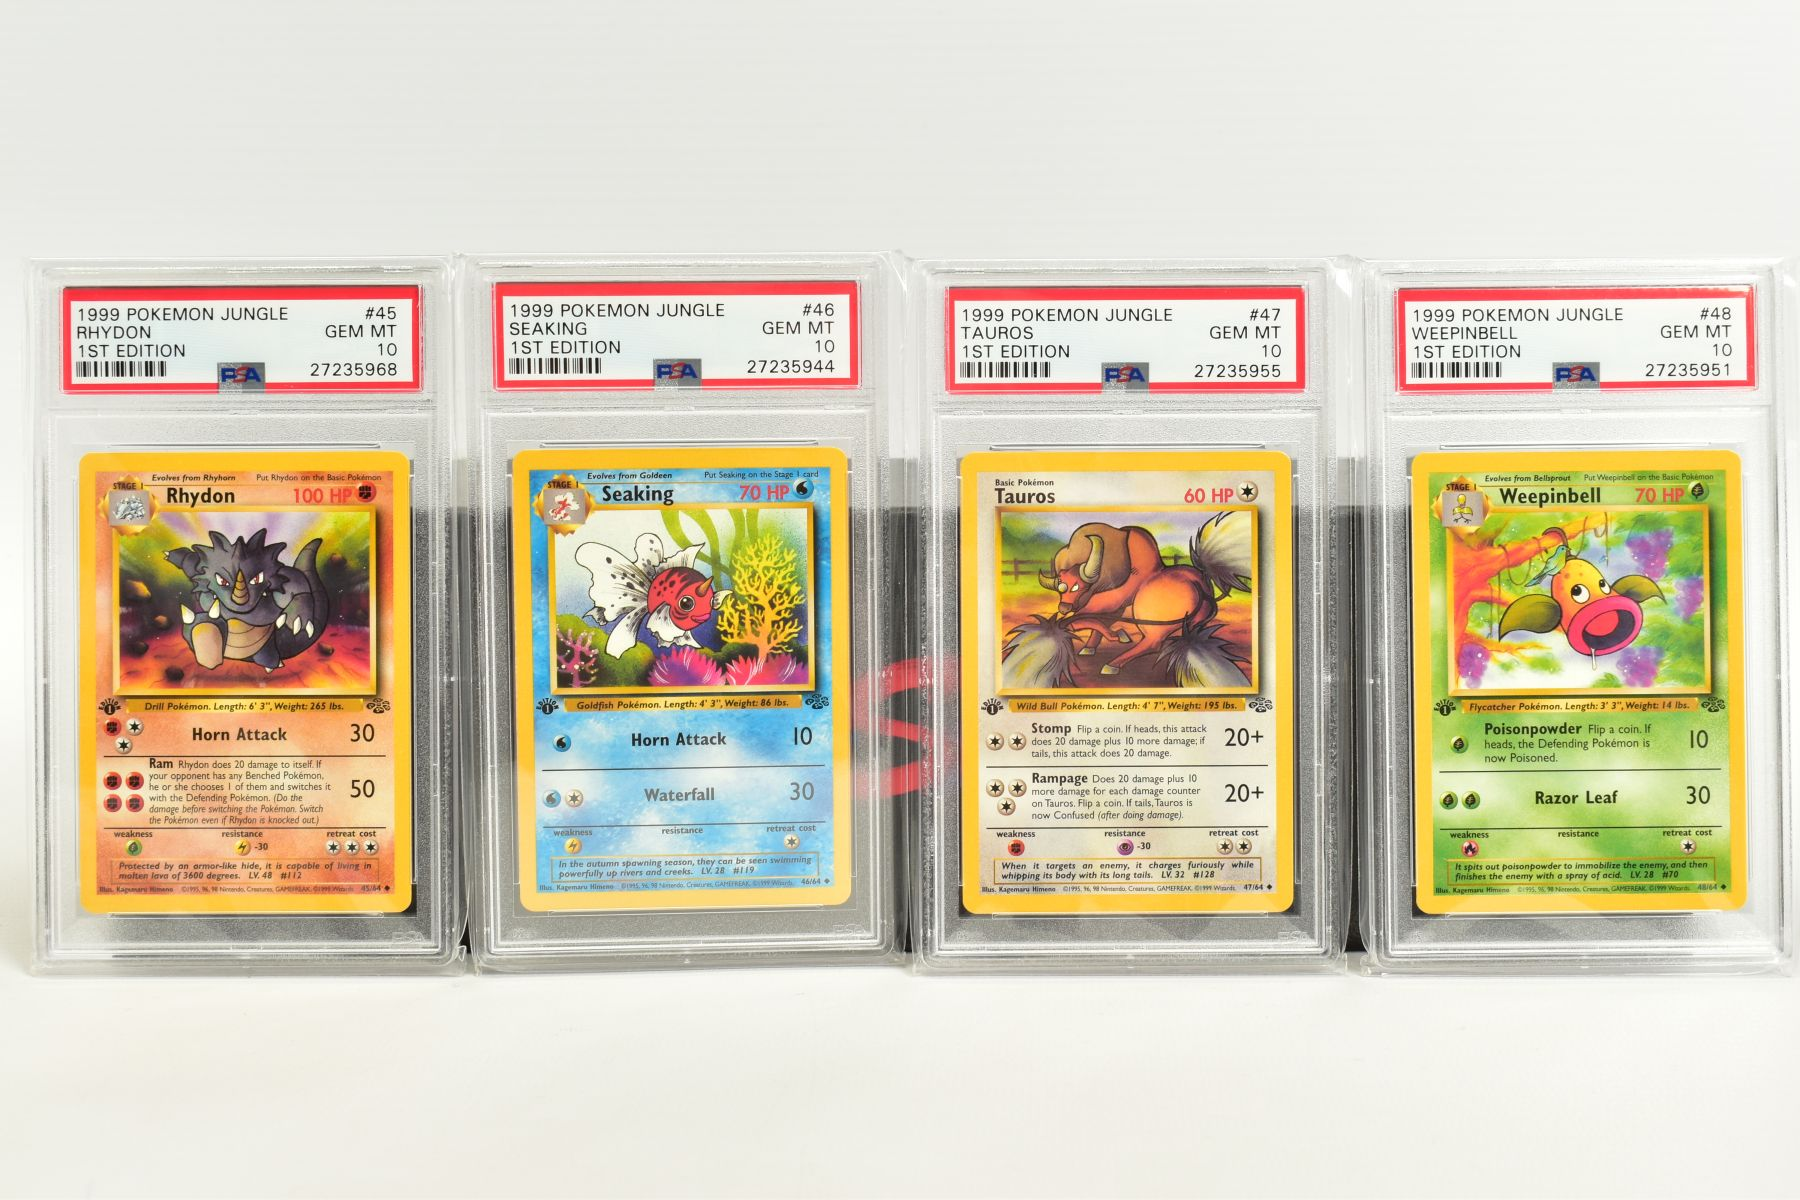 A QUANTITY OF PSA GRADED POKEMON 1ST EDITION JUNGLE SET CARDS, all are graded GEM MINT 10 and are - Image 9 of 13